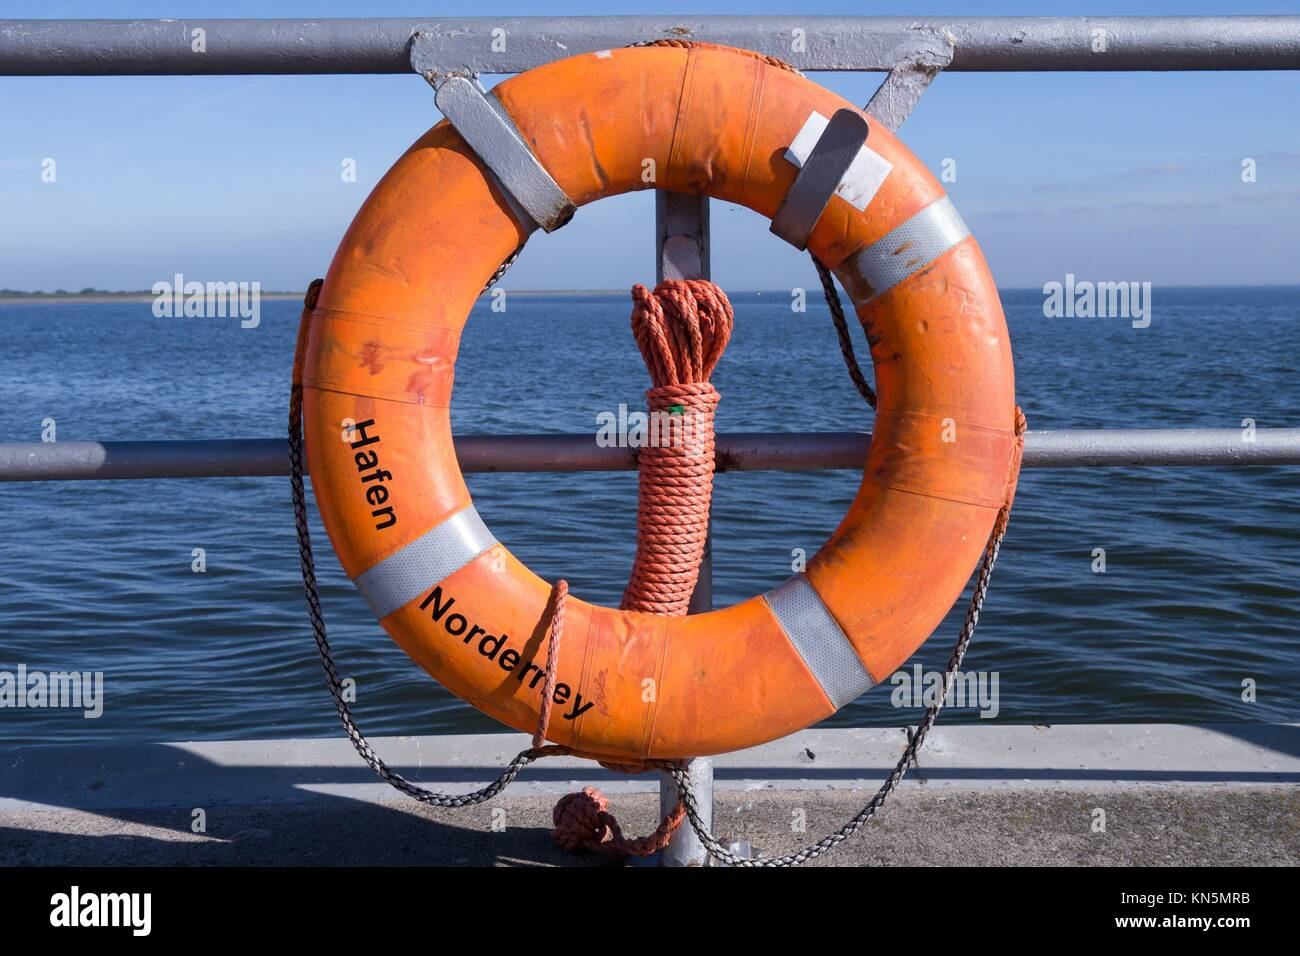 lifebelt at harbor of norderney. Stock Photo